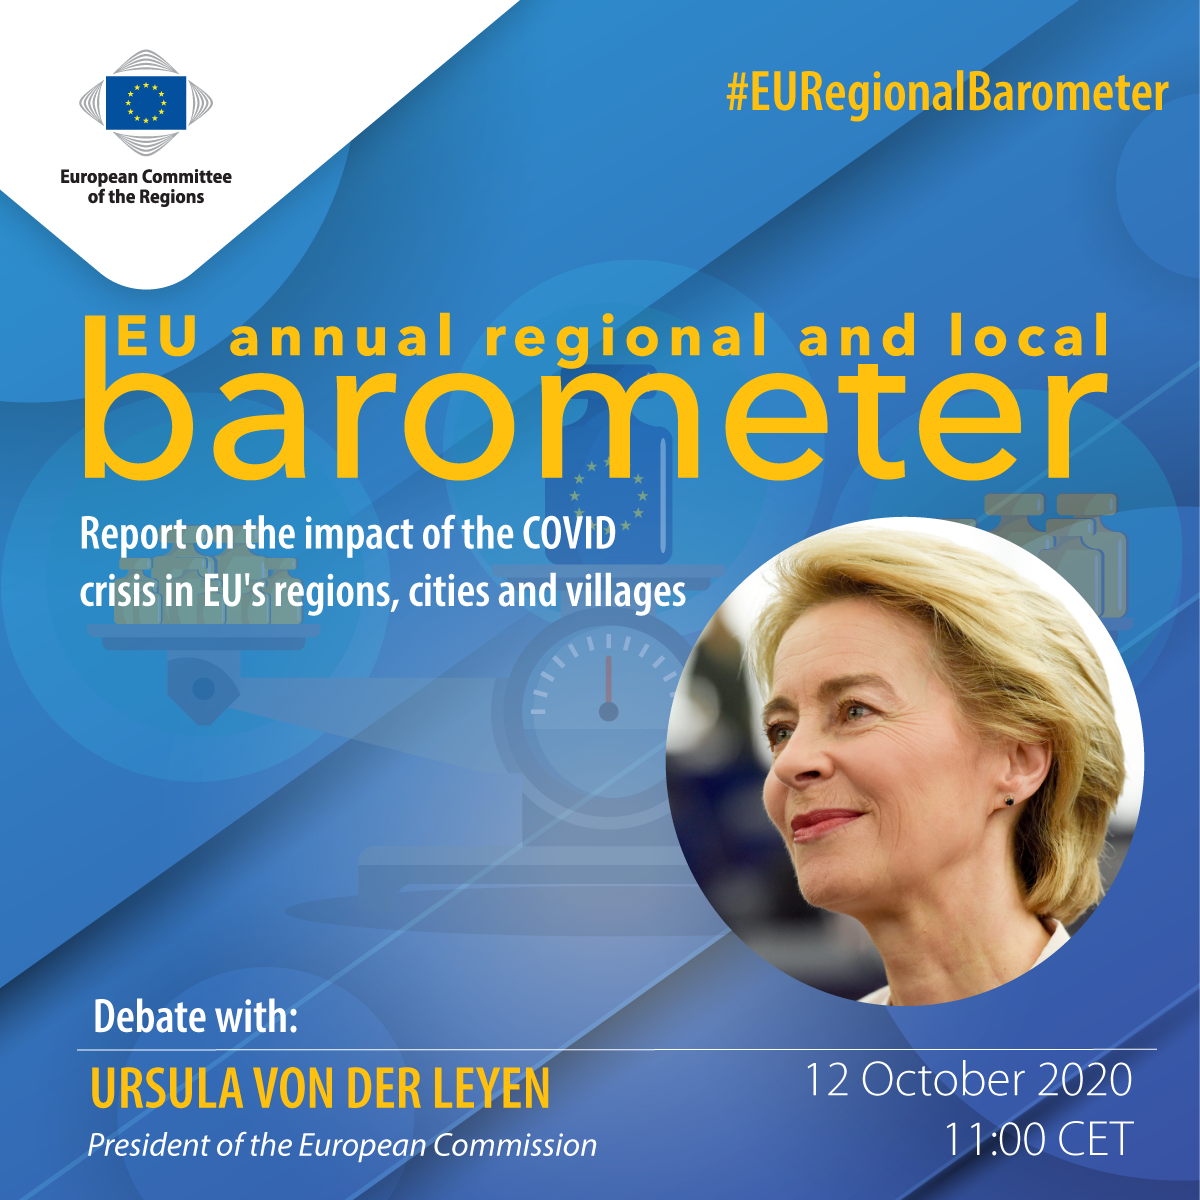 1_Debate announcement-Ursula Von Der Leyen